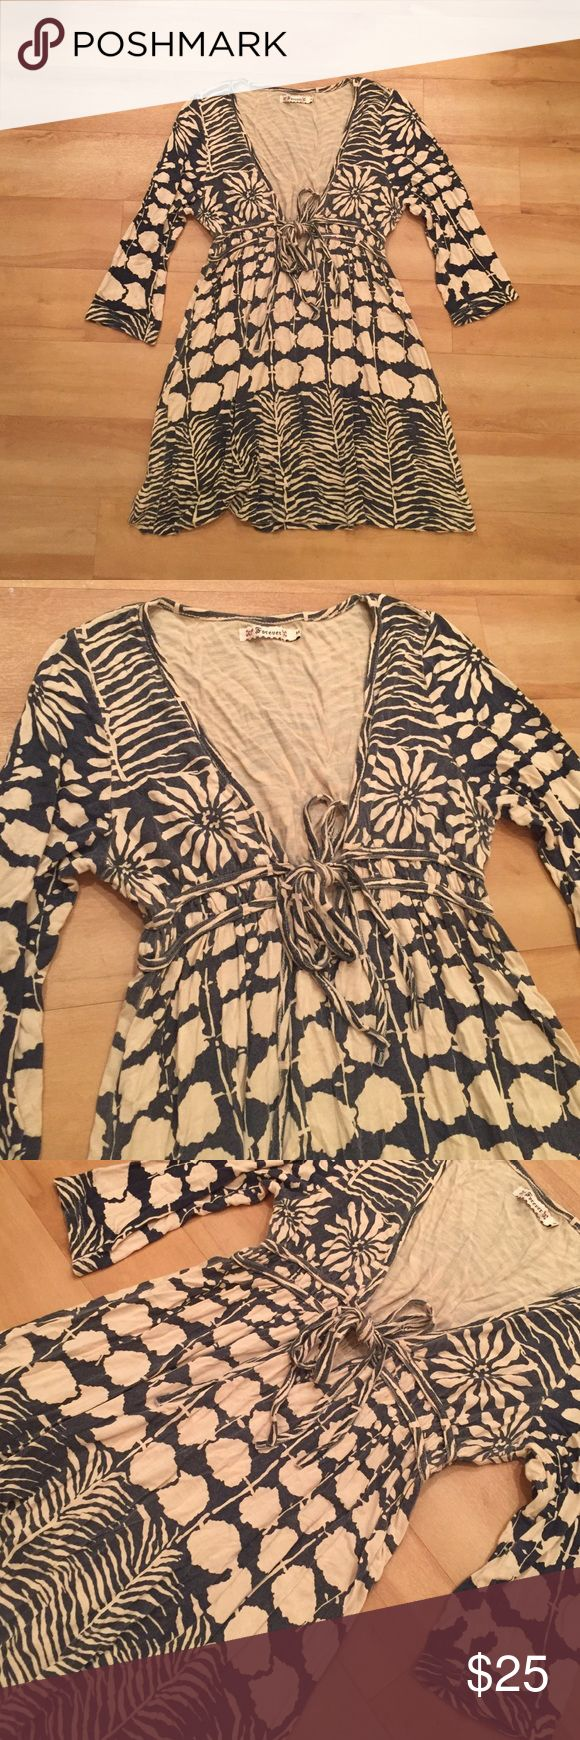 NAVY PRINTED TUNIC/DRESS. SIZE MEDIUM NAVY PRINTED TUNIC/DRESS. SIZE MEDIUM. Could be worn as a top or a dress if you are petite. Fits a normal size small or medium girl Dresses